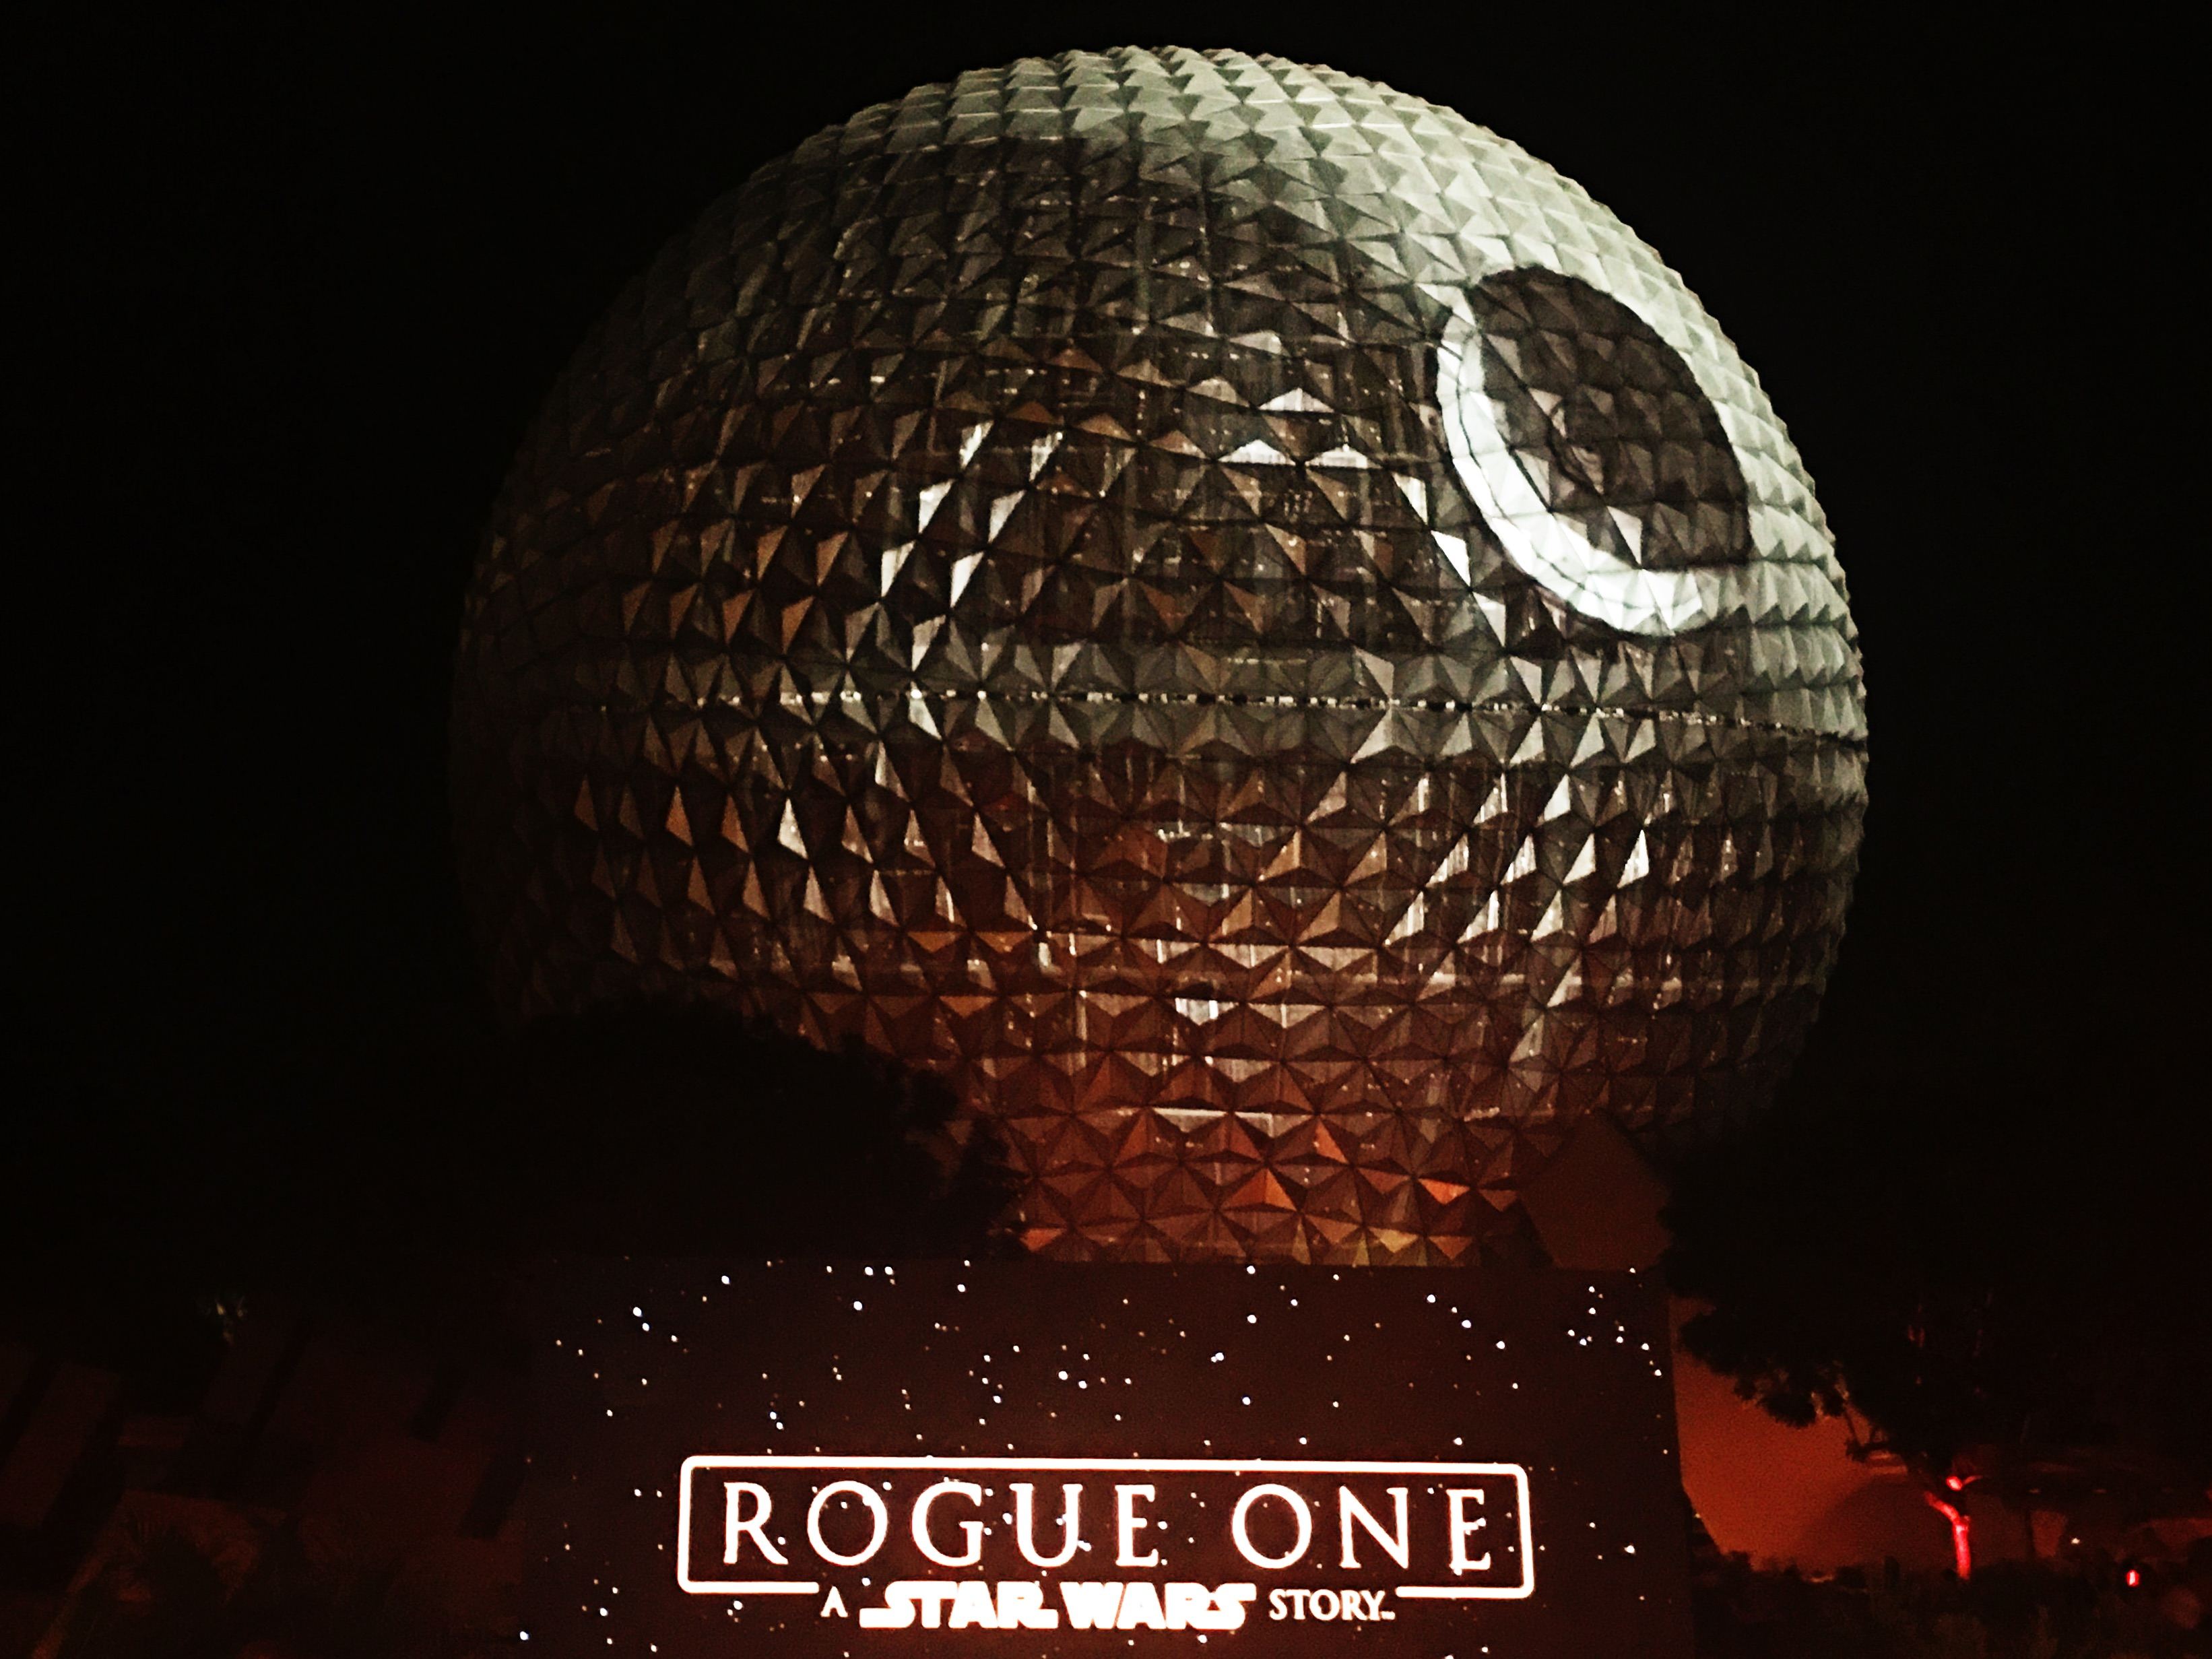 Rogue One: A Star Wars Story - Spaceship Earth Death Star